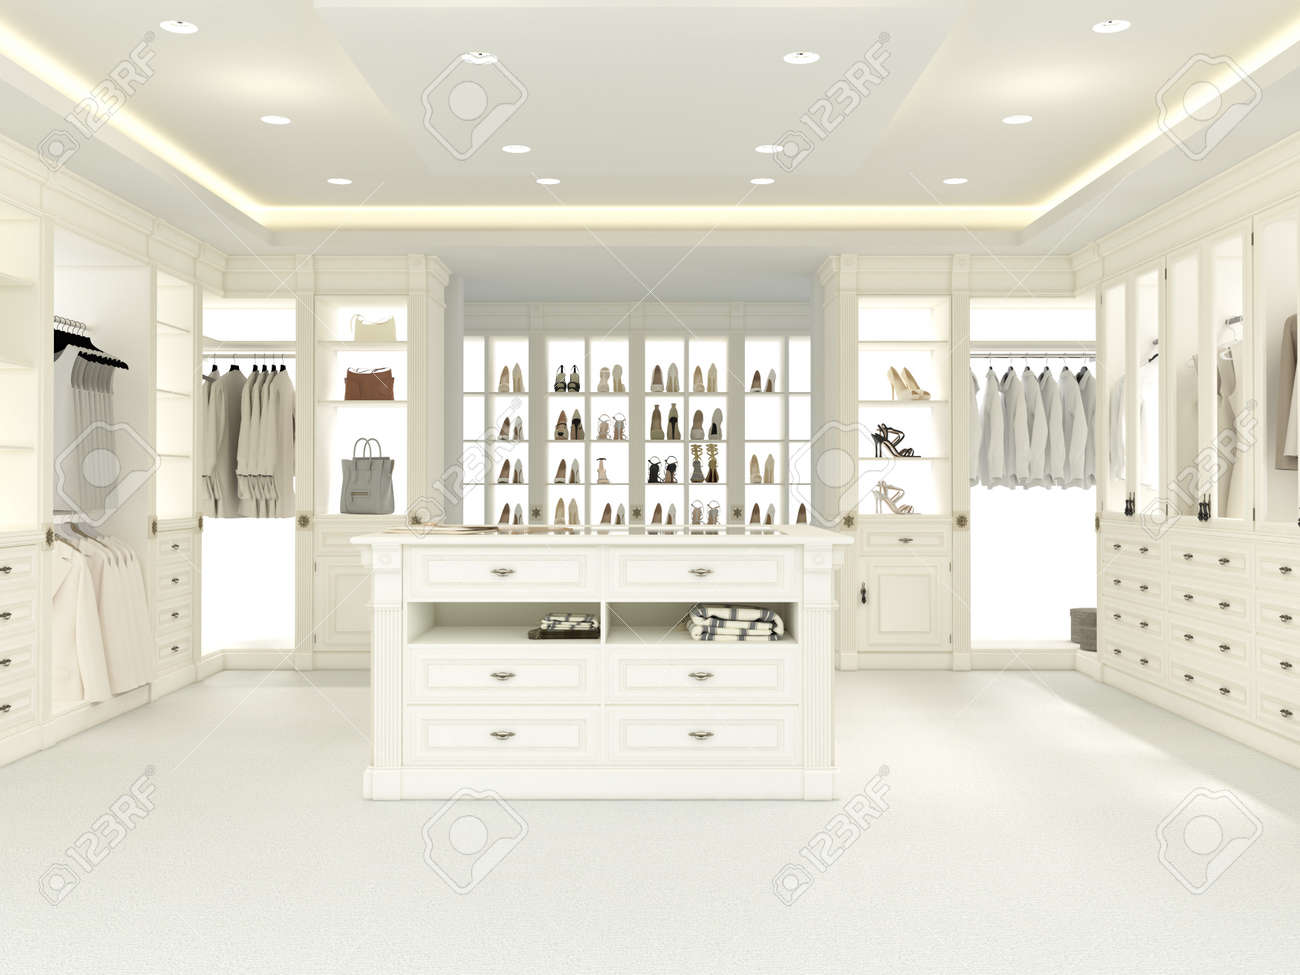 An American Luxury Walkin Closet With Many Space. 3d Rendering Stock Photo    41192212